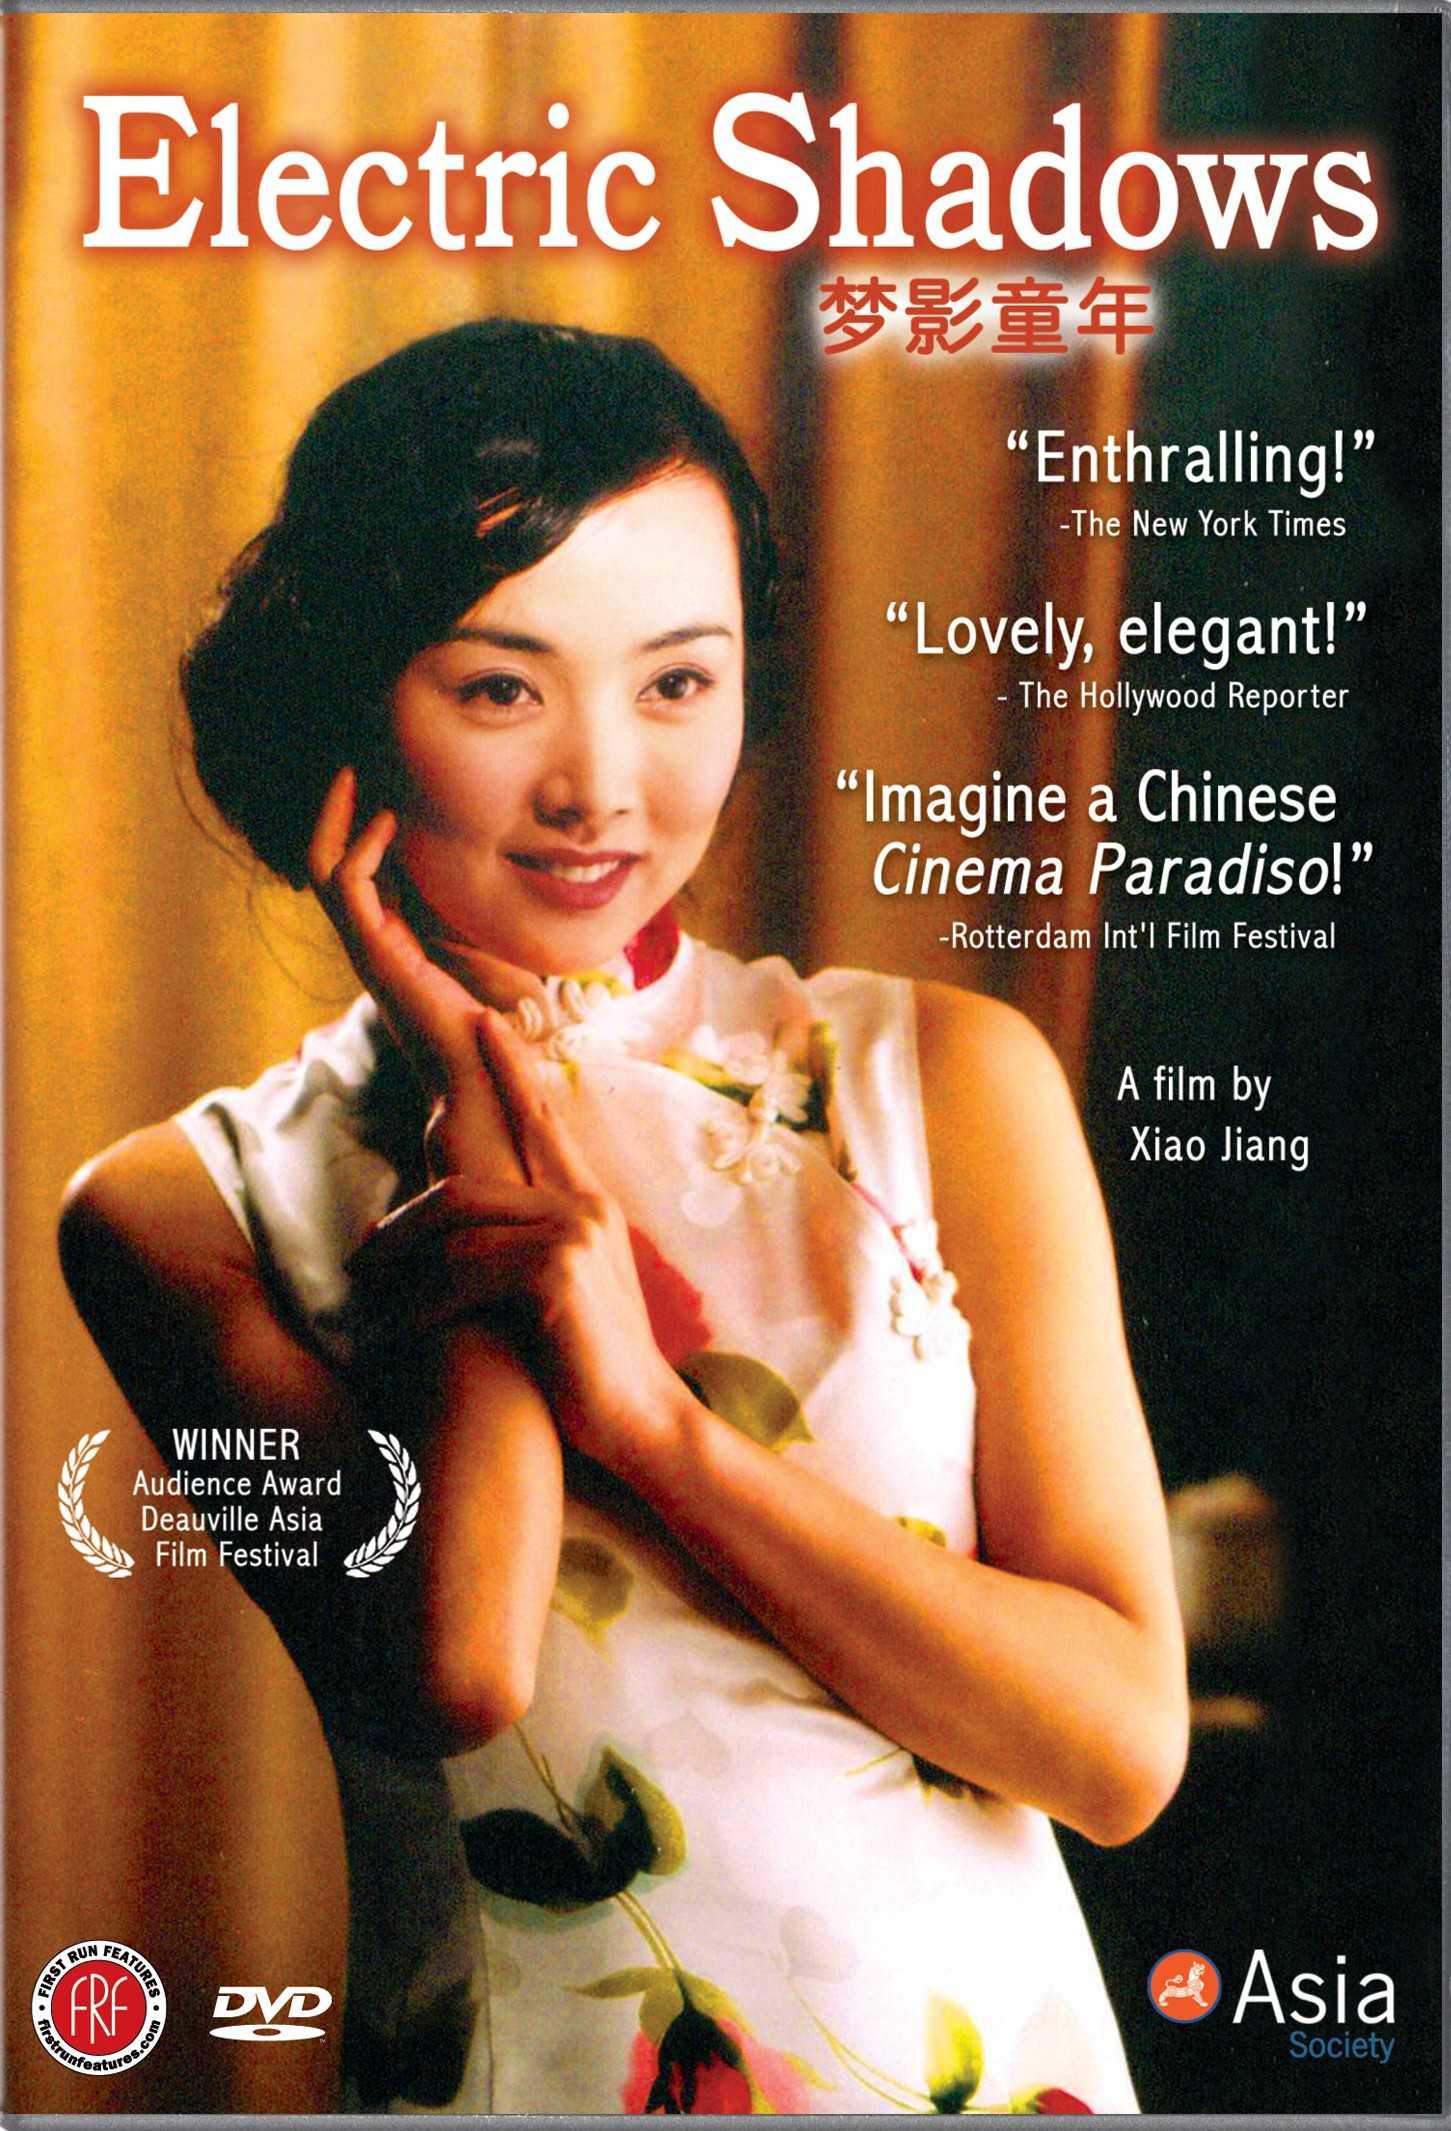 ELECTRIC SHADOWS BY JIANG,XIAO (DVD)